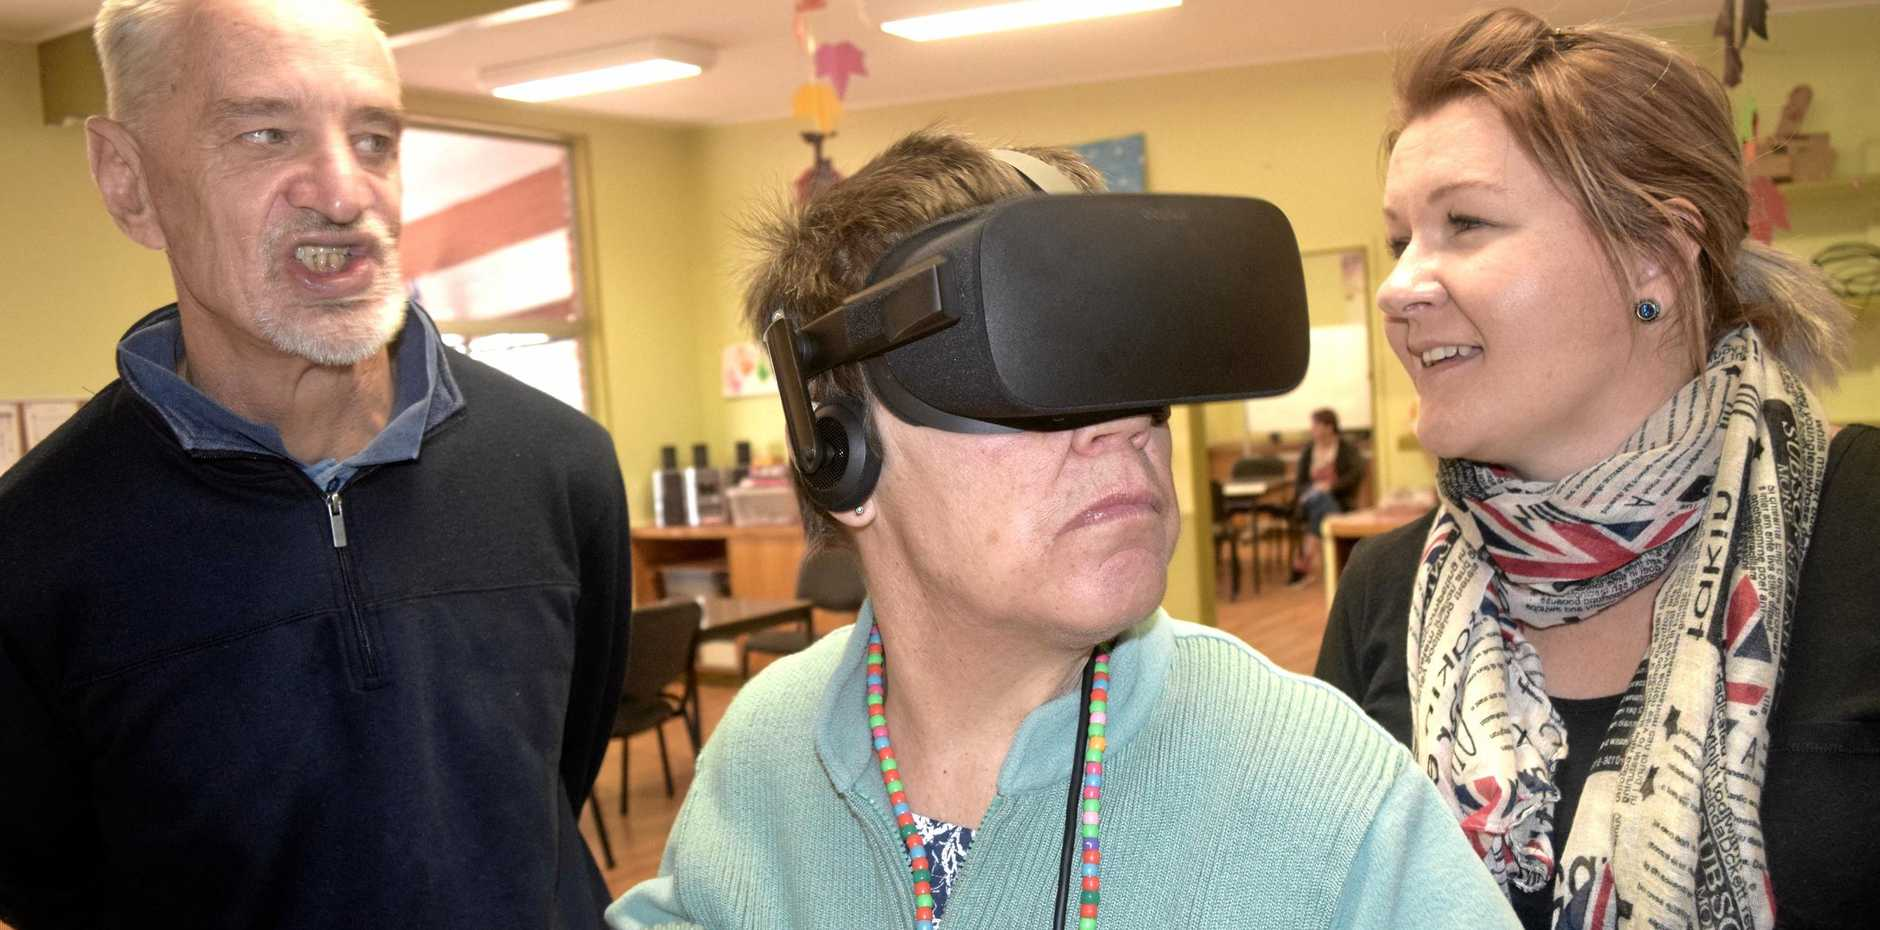 TASK AT HAND: They've tackled virtual reality and now Stanthorpe's Endeavour Foundation is taking on a fashion parade.